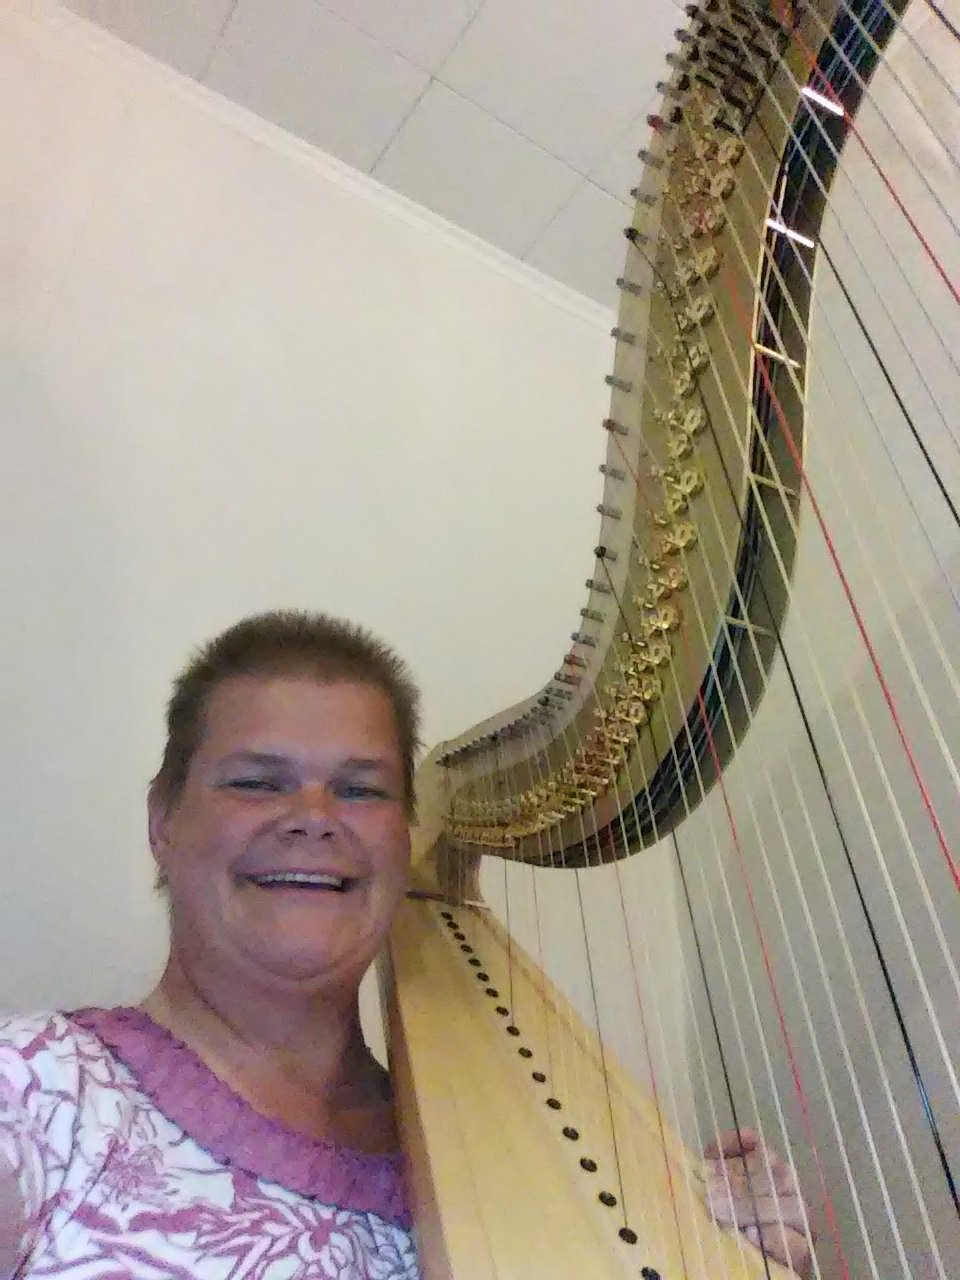 Me and Grover, my Camac Athena harp.